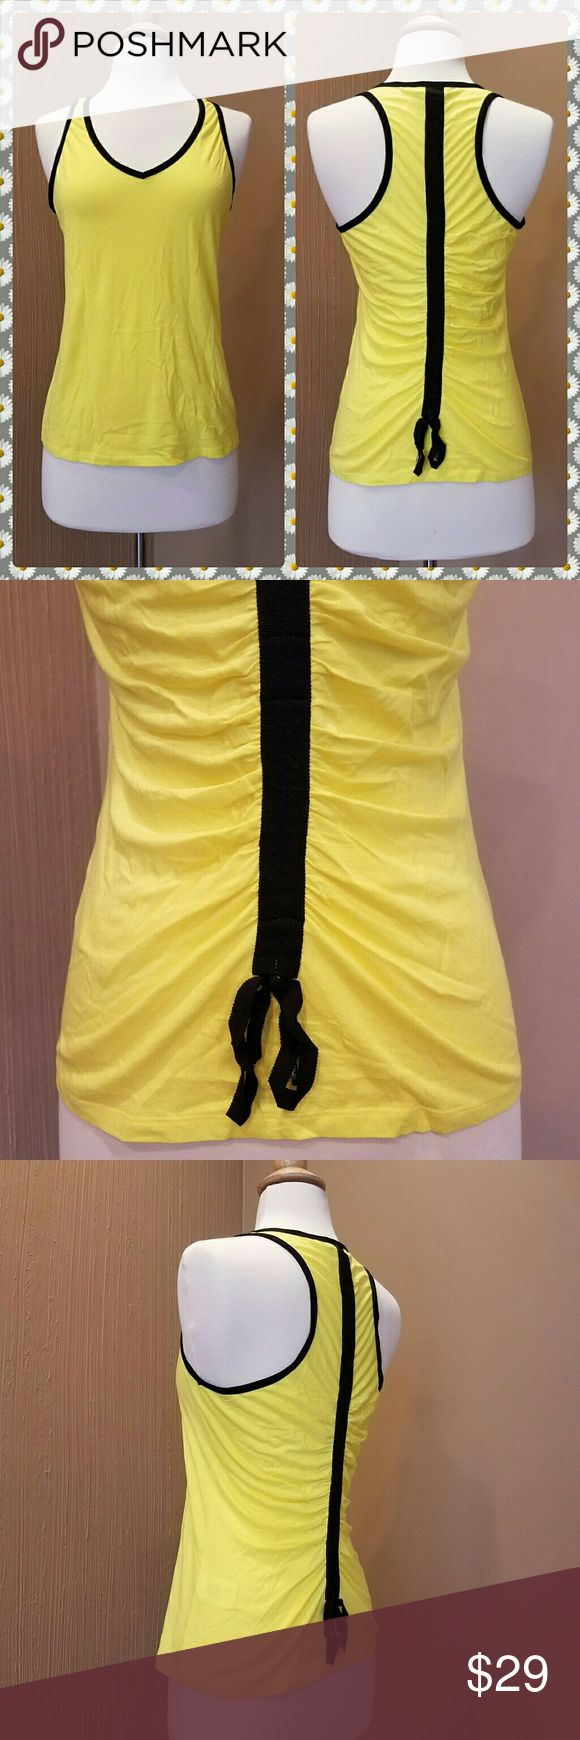 NWOT athletic top Brand new, never worn, PH8 top. It is BEBE SPORT'S upscale, luxurious line of athletic wear. Beautiful yellow with black piping, ruched back with adjustable strings running down the middle. You are going to make a slash! I took the tags off, as I do most of the time, but never got to wearing it. Too many tops, too lazy when it comes to workouts:) ph8 Tops